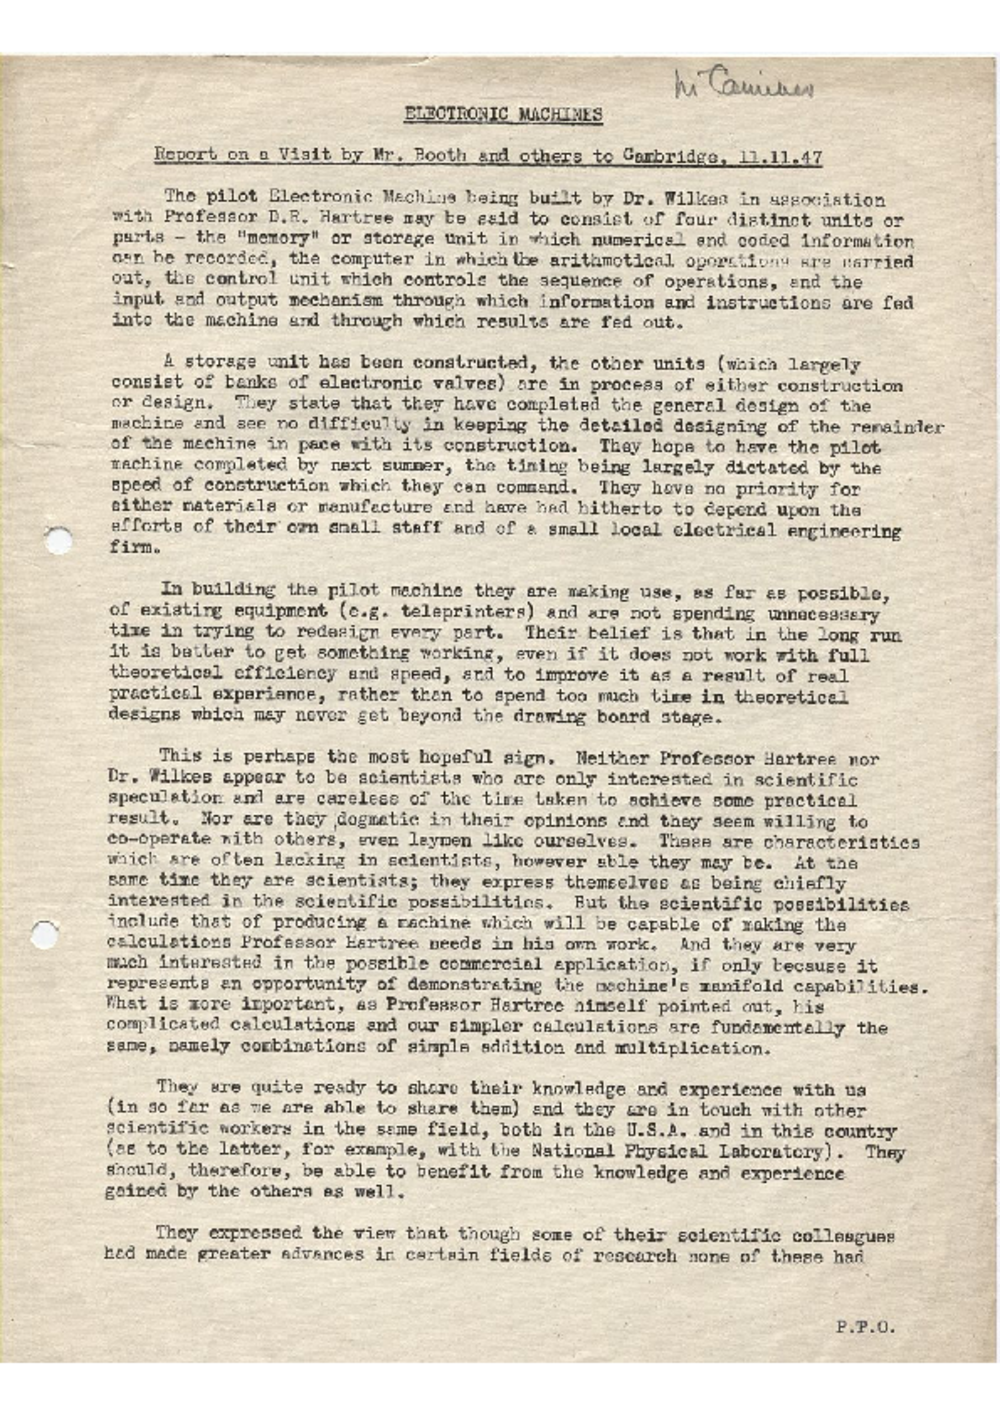 Article: 54869 Electronic Machines - Report on a Visit by Mr Booth and others to Cambridge, Nov 1947